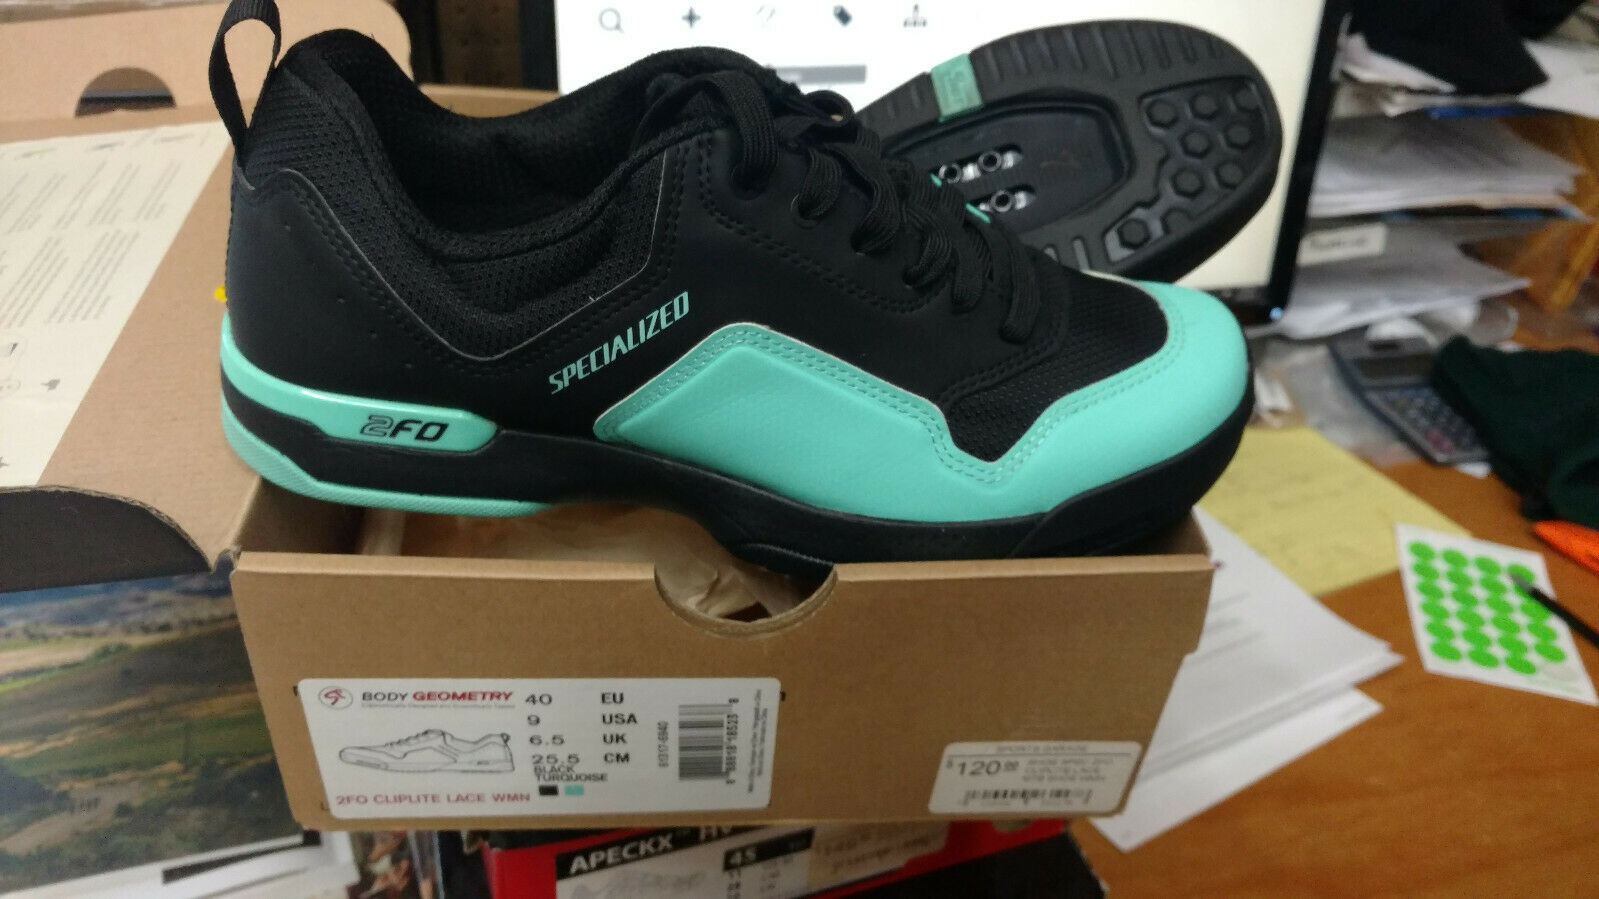 Specialized 2F0 shoe Womens Cliplite Lace  size 40  outlet on sale